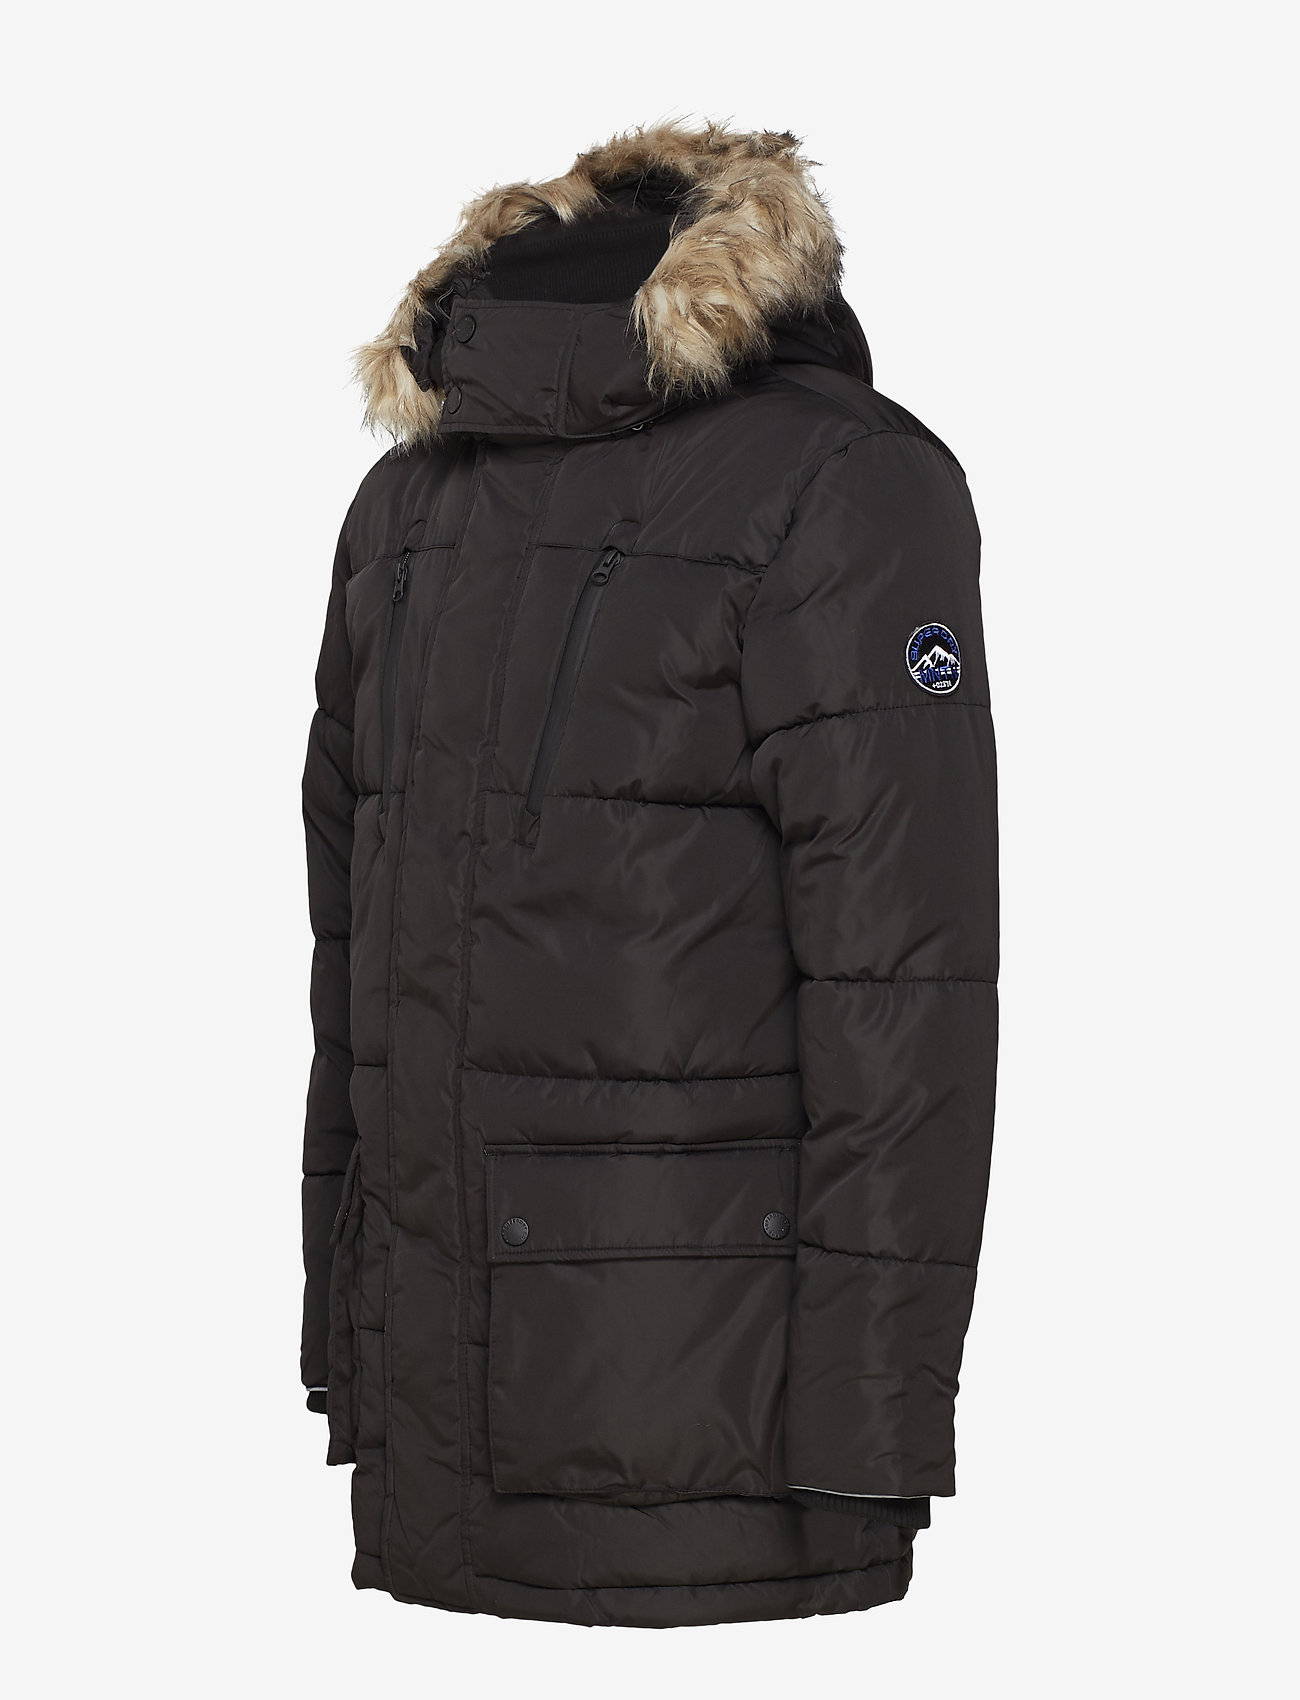 Superdry SD EXPEDITION PARKA - Jakker og frakker BLACK - Menn Klær